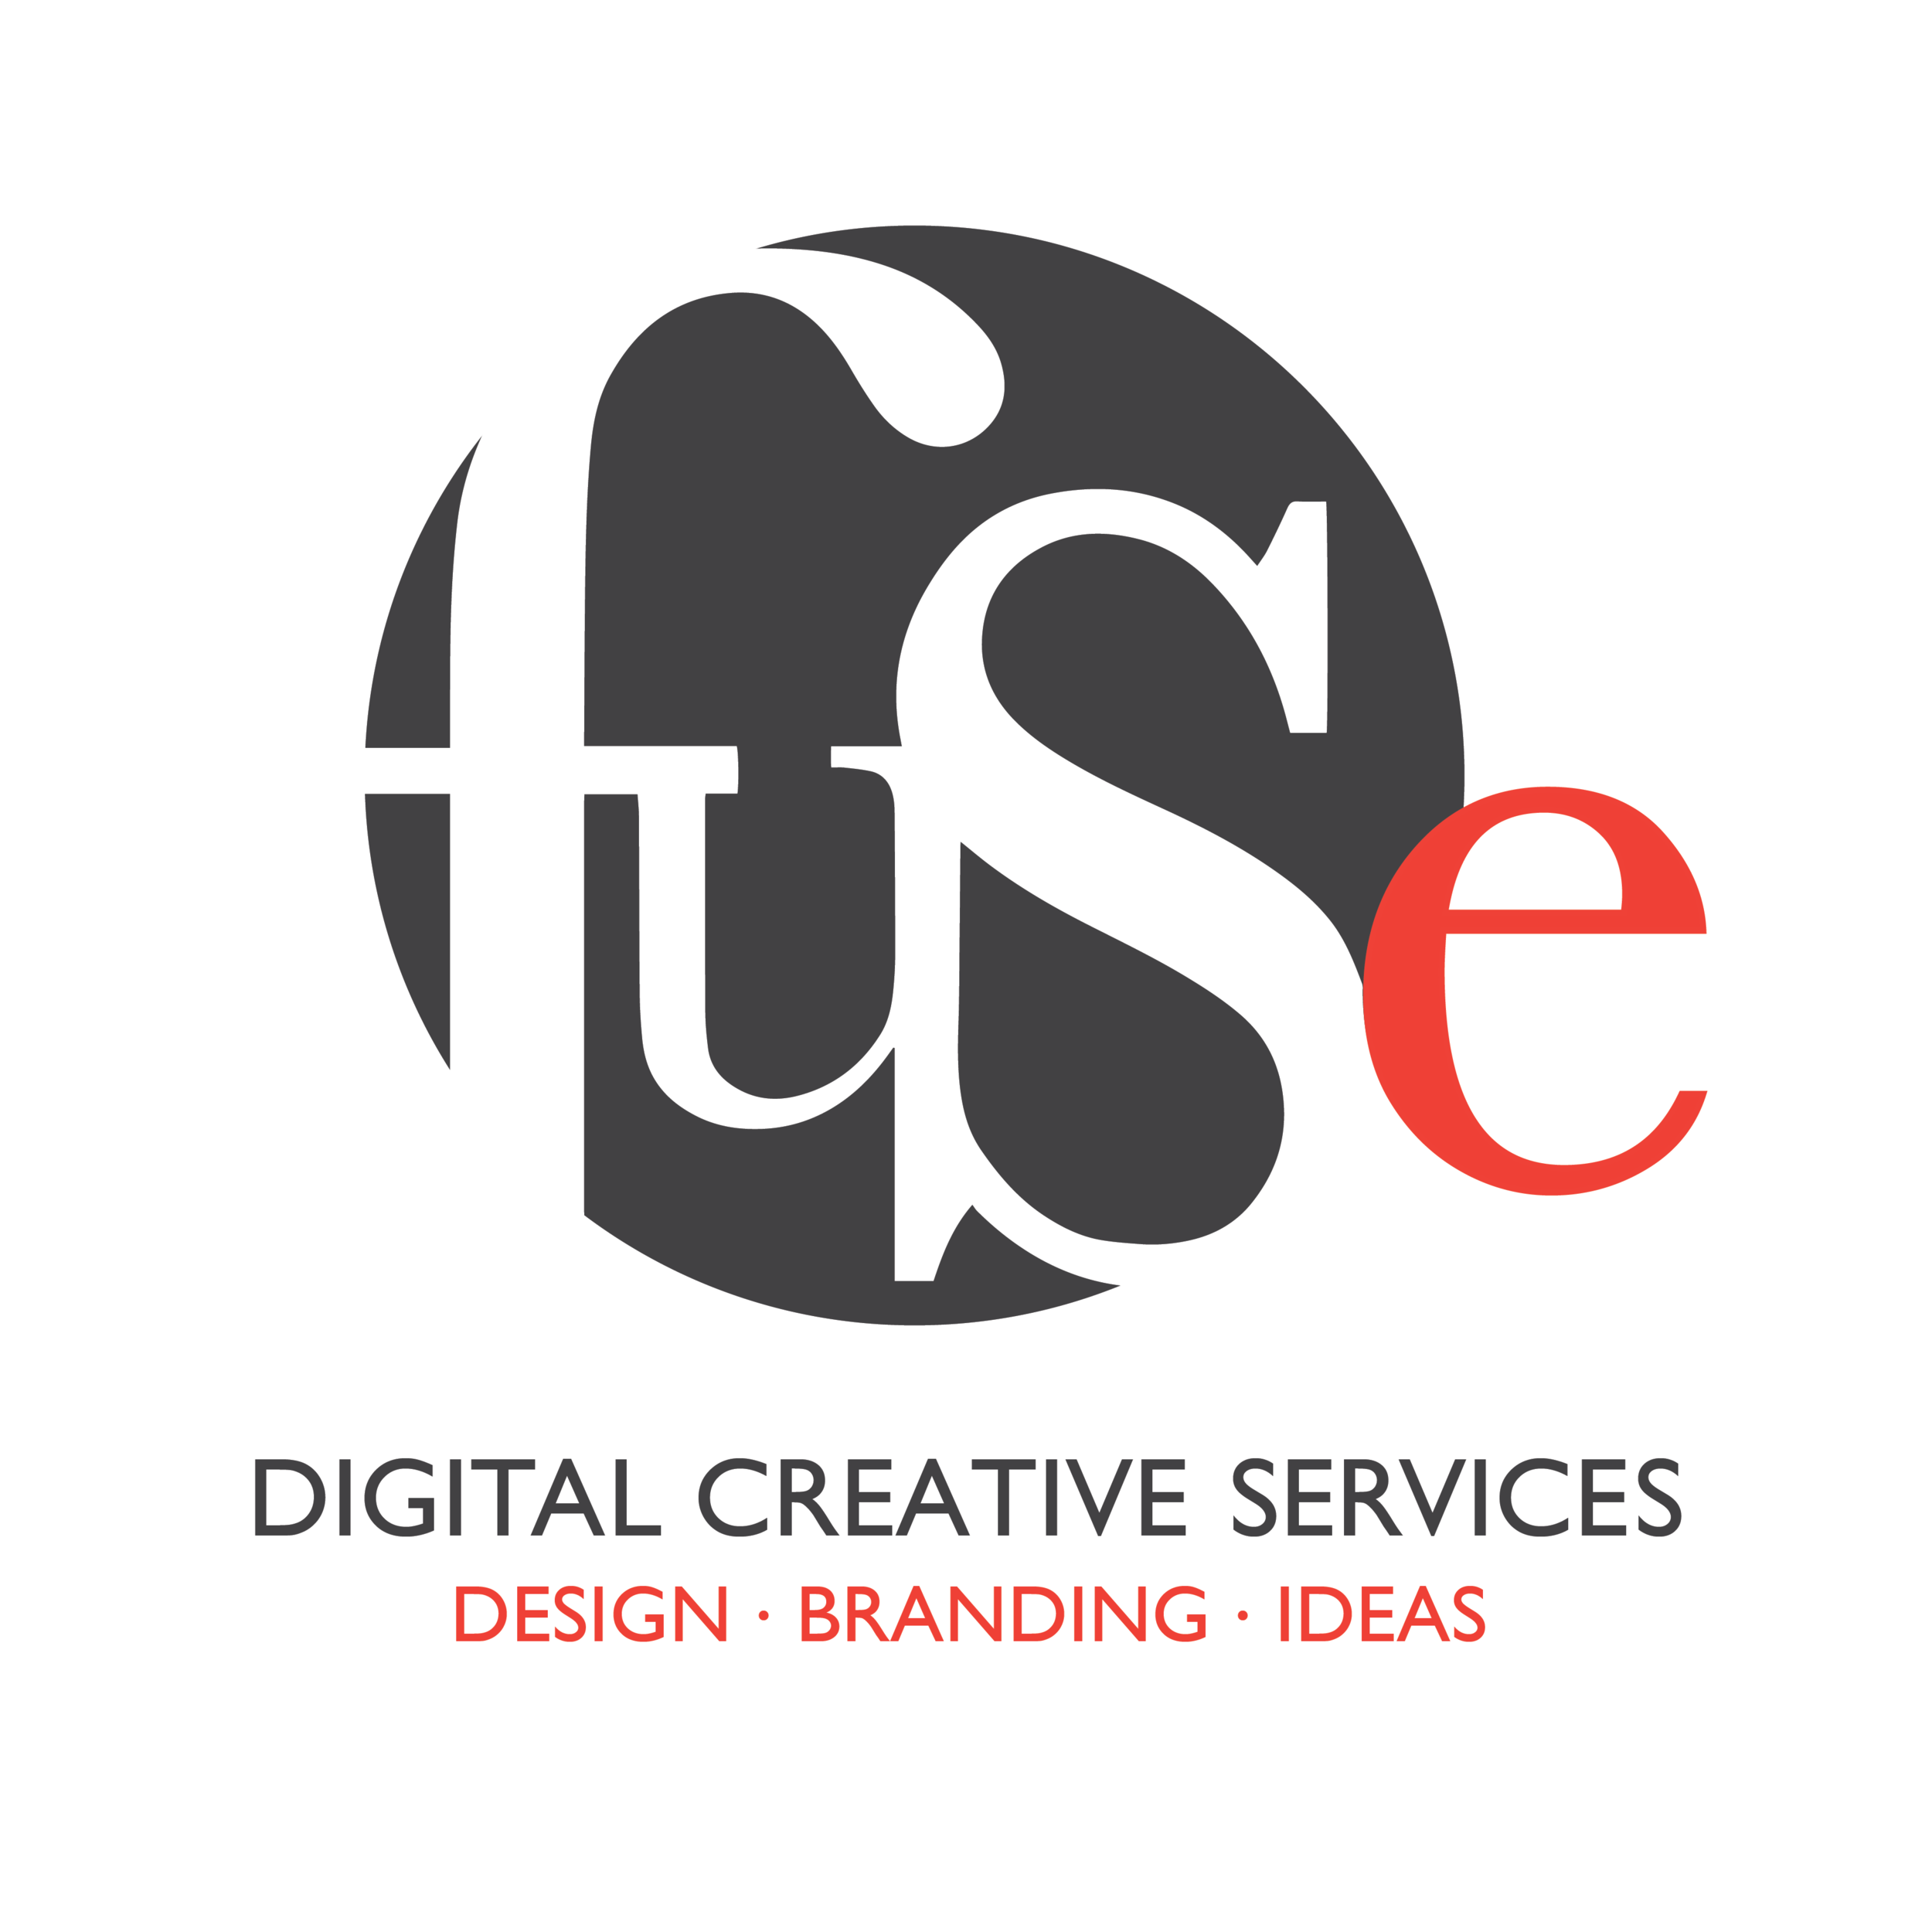 Fuse Logo on Square 12%22.png